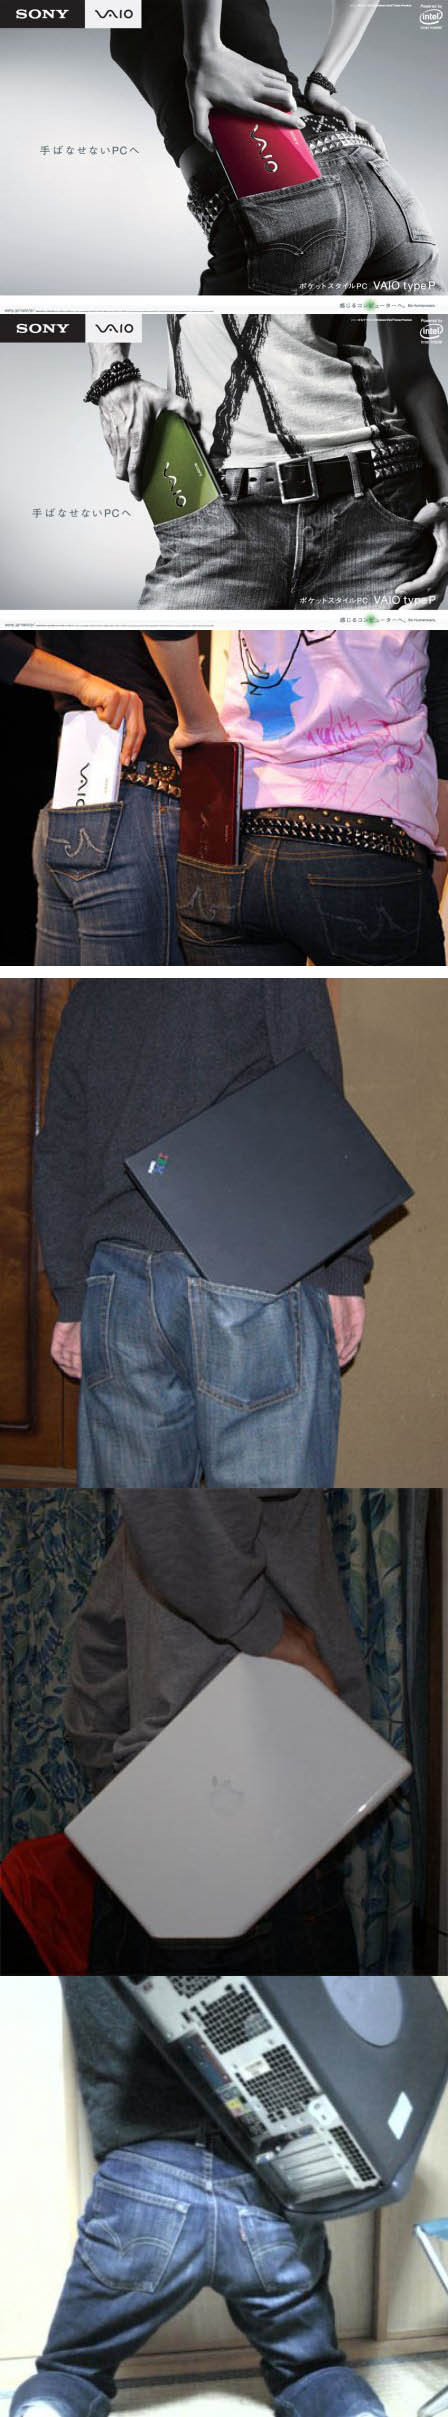 tech_pants.jpg (157 KB)